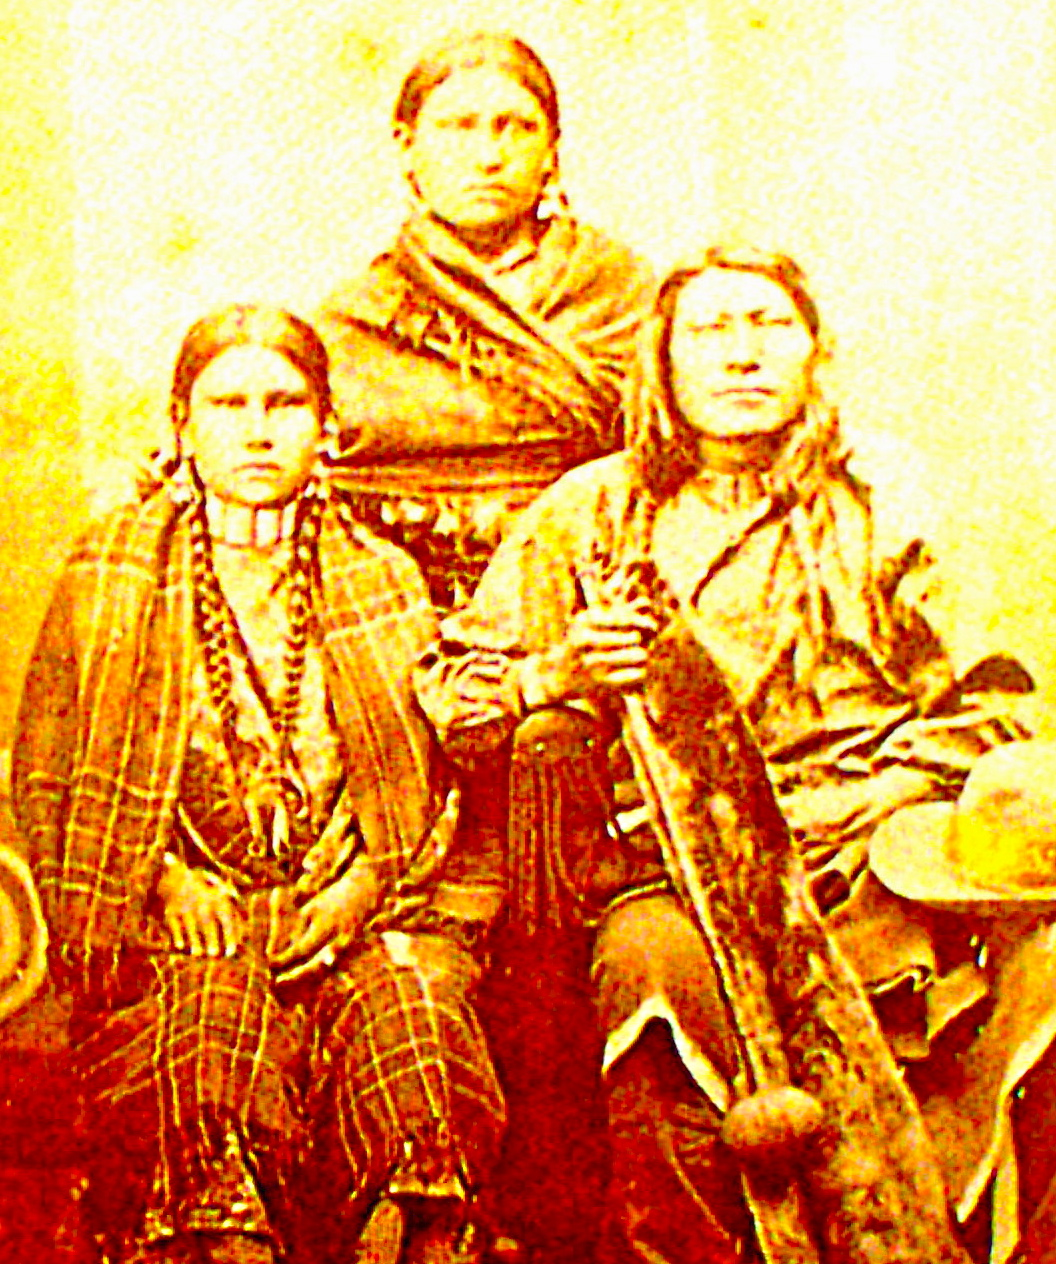 34-NATIVE-AMERICAN-INDIANS-NORTH-DAKOTA-c.-Minot-State-University-Library-Gallery-Collection1